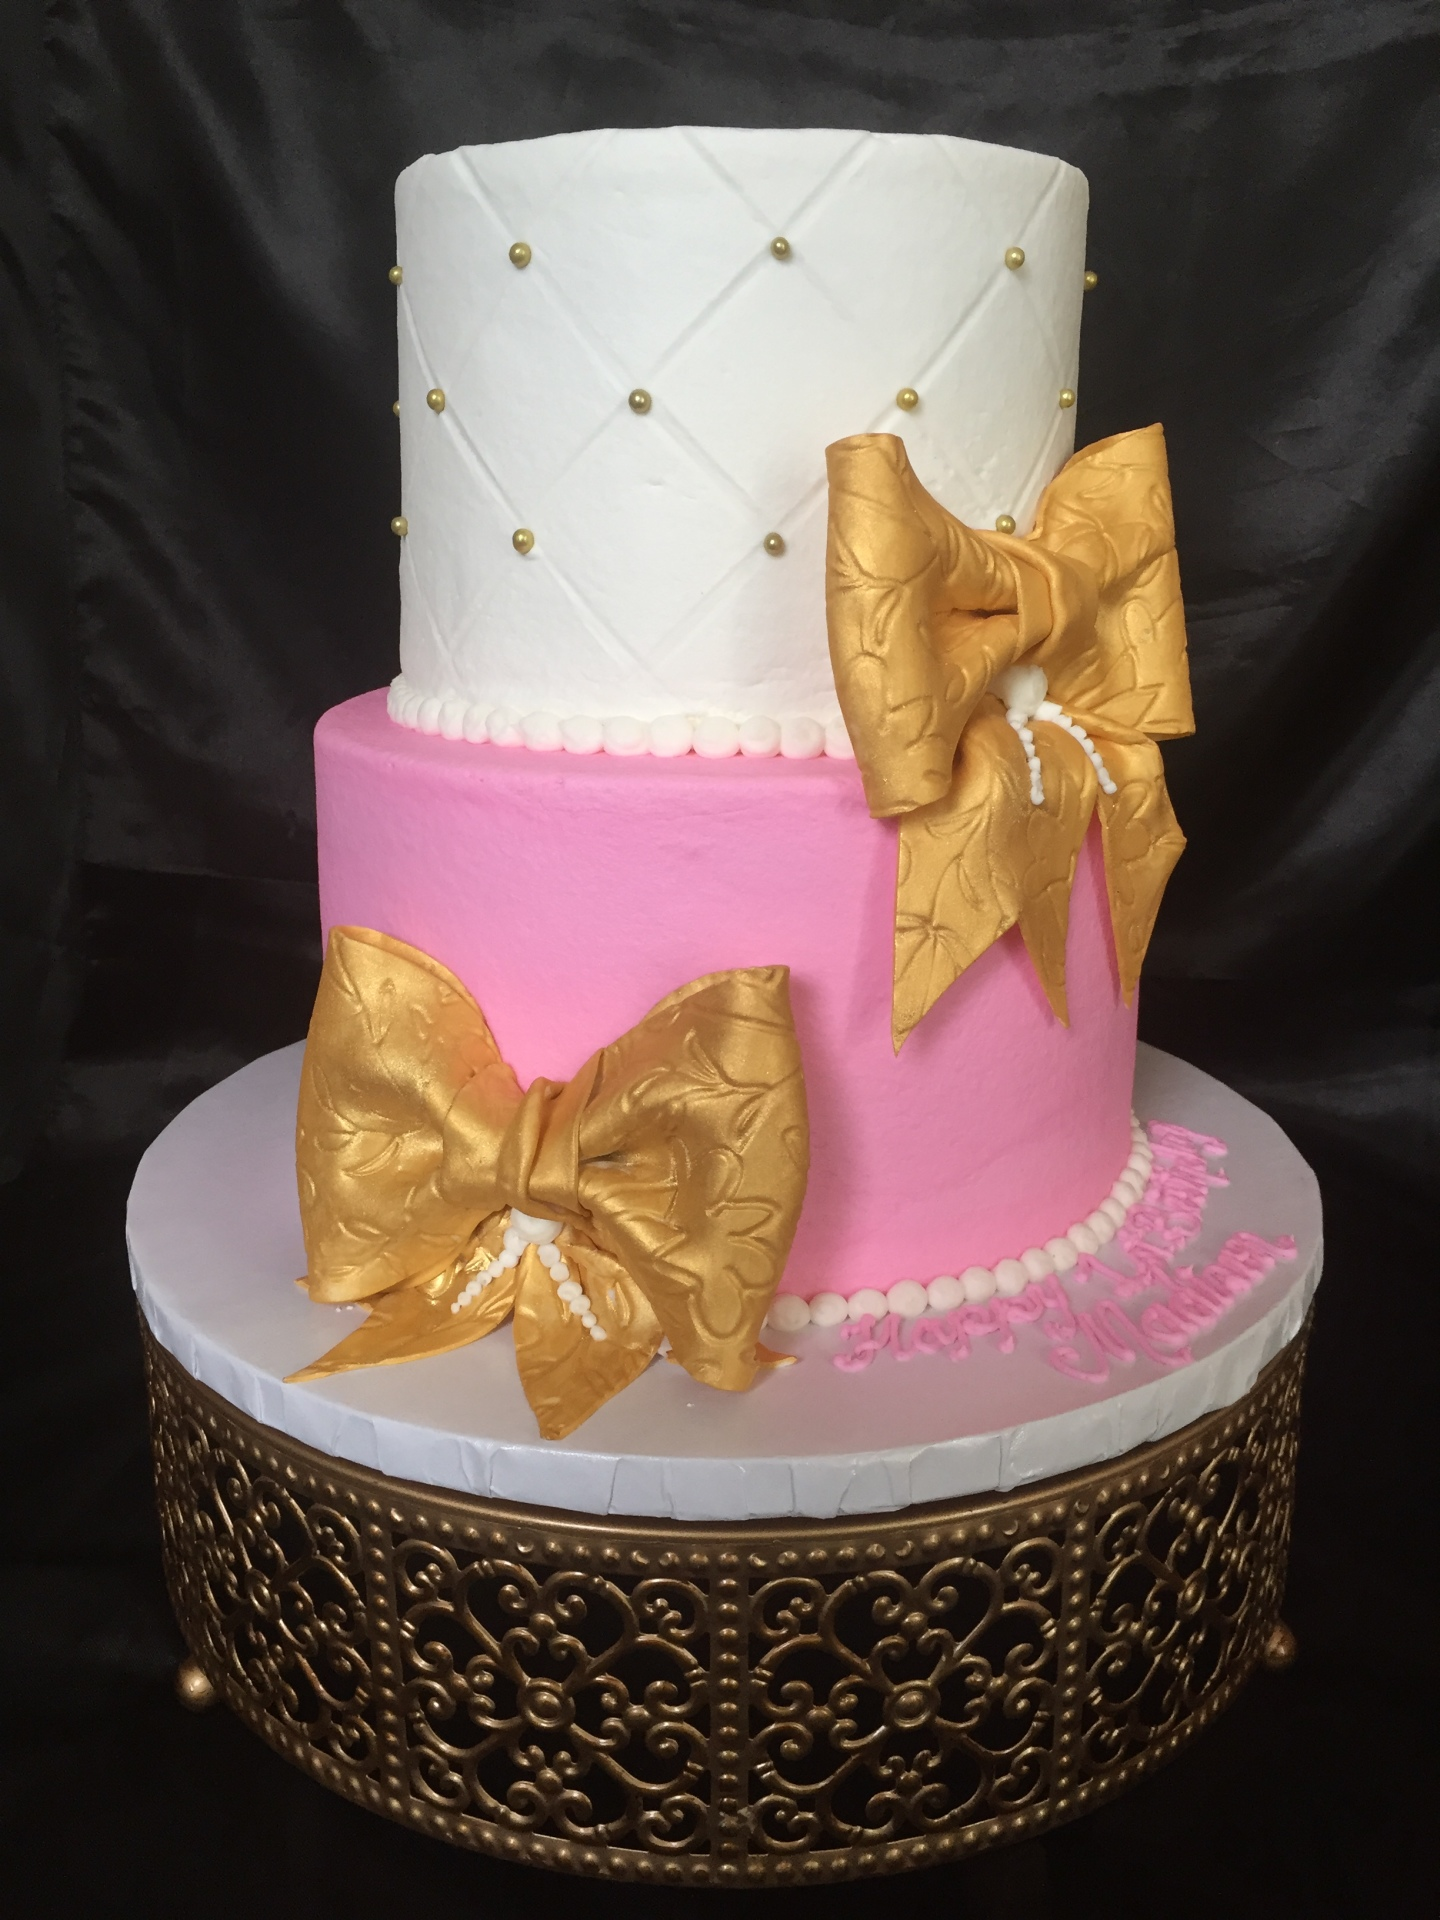 Gold bows pink and white tiered before tiara topper